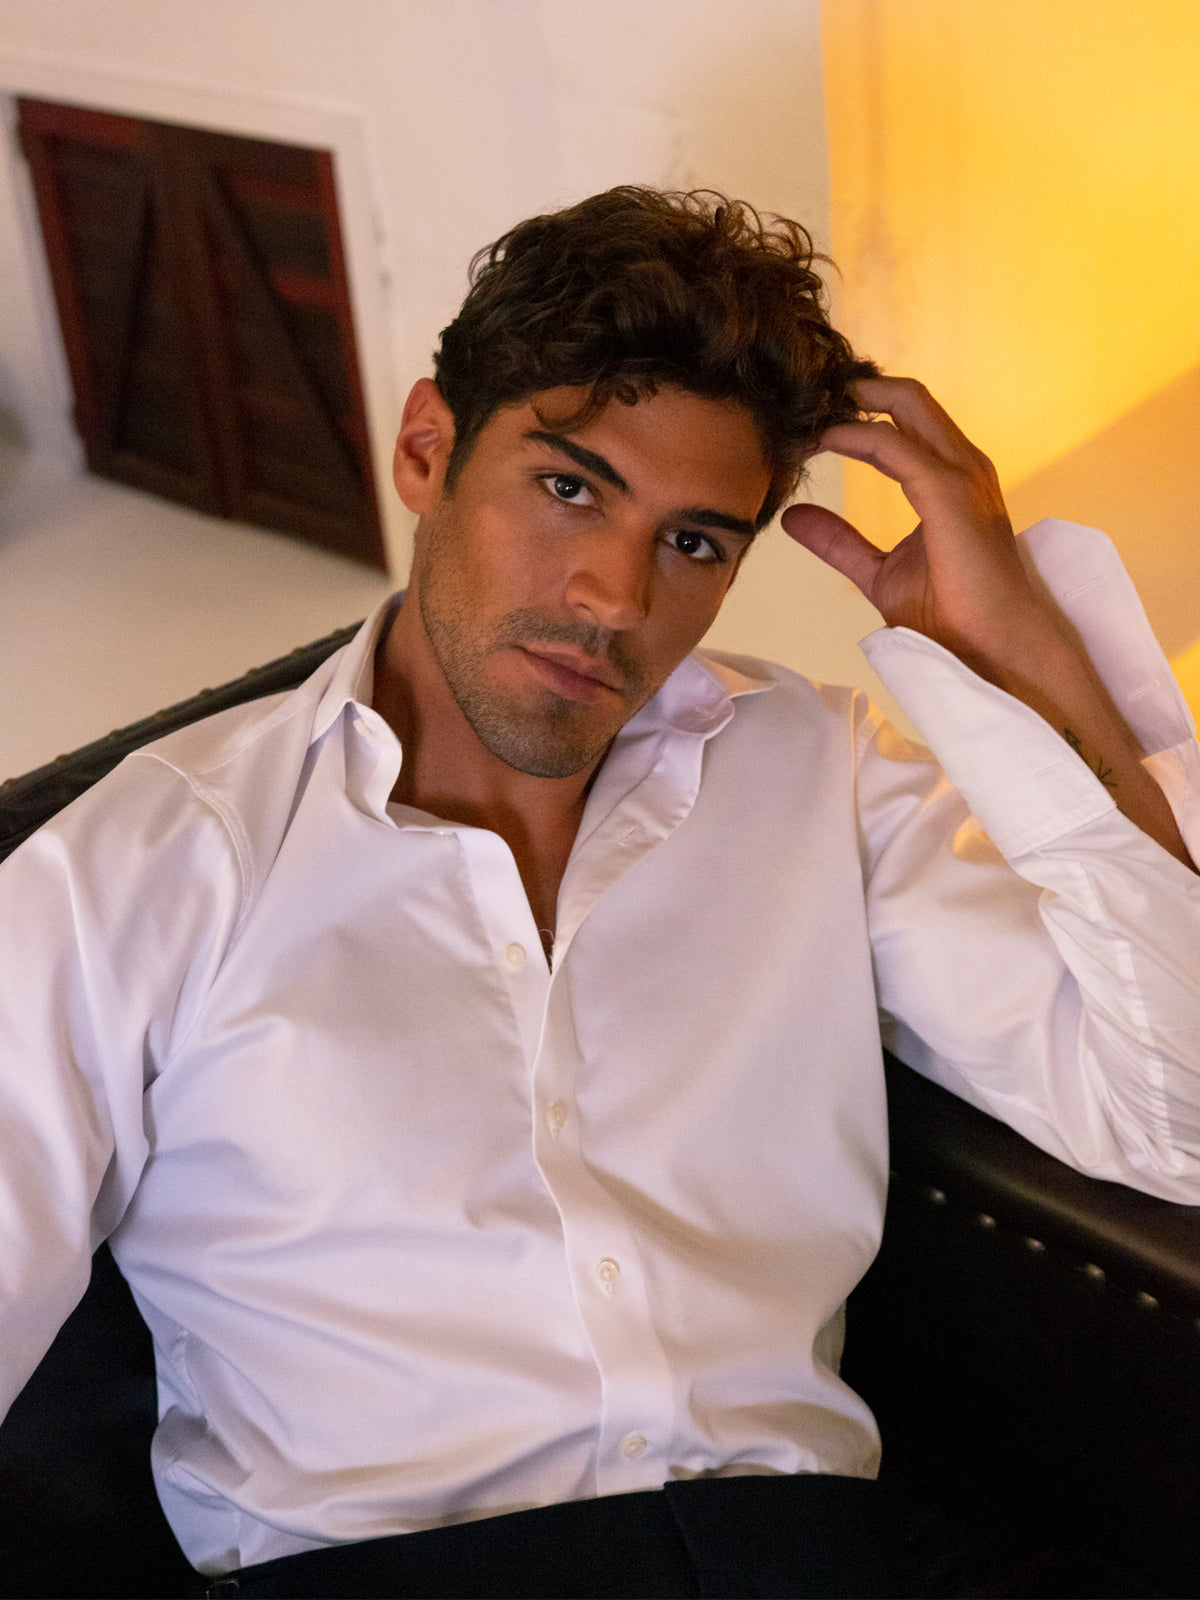 Model reclining in crisp white shirt